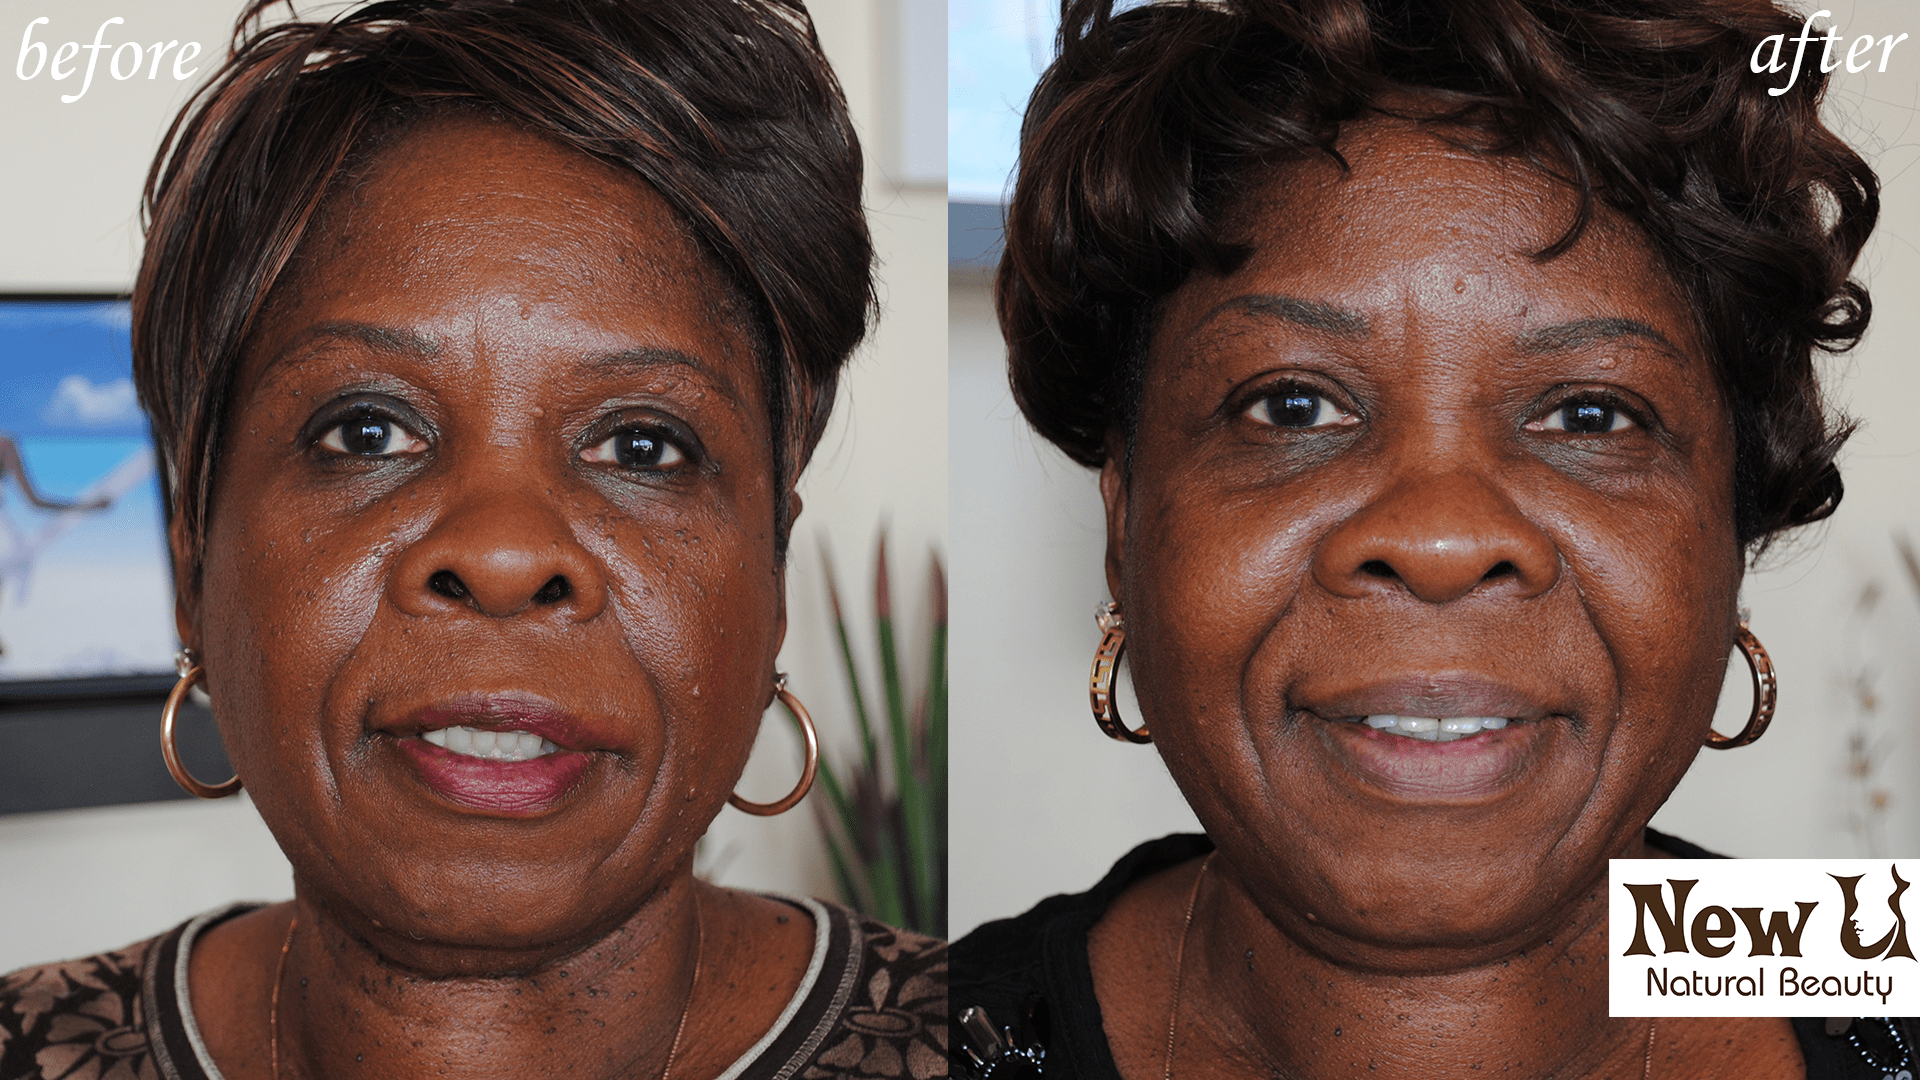 Skin Pigmentation 4 Las Vegas Before & After